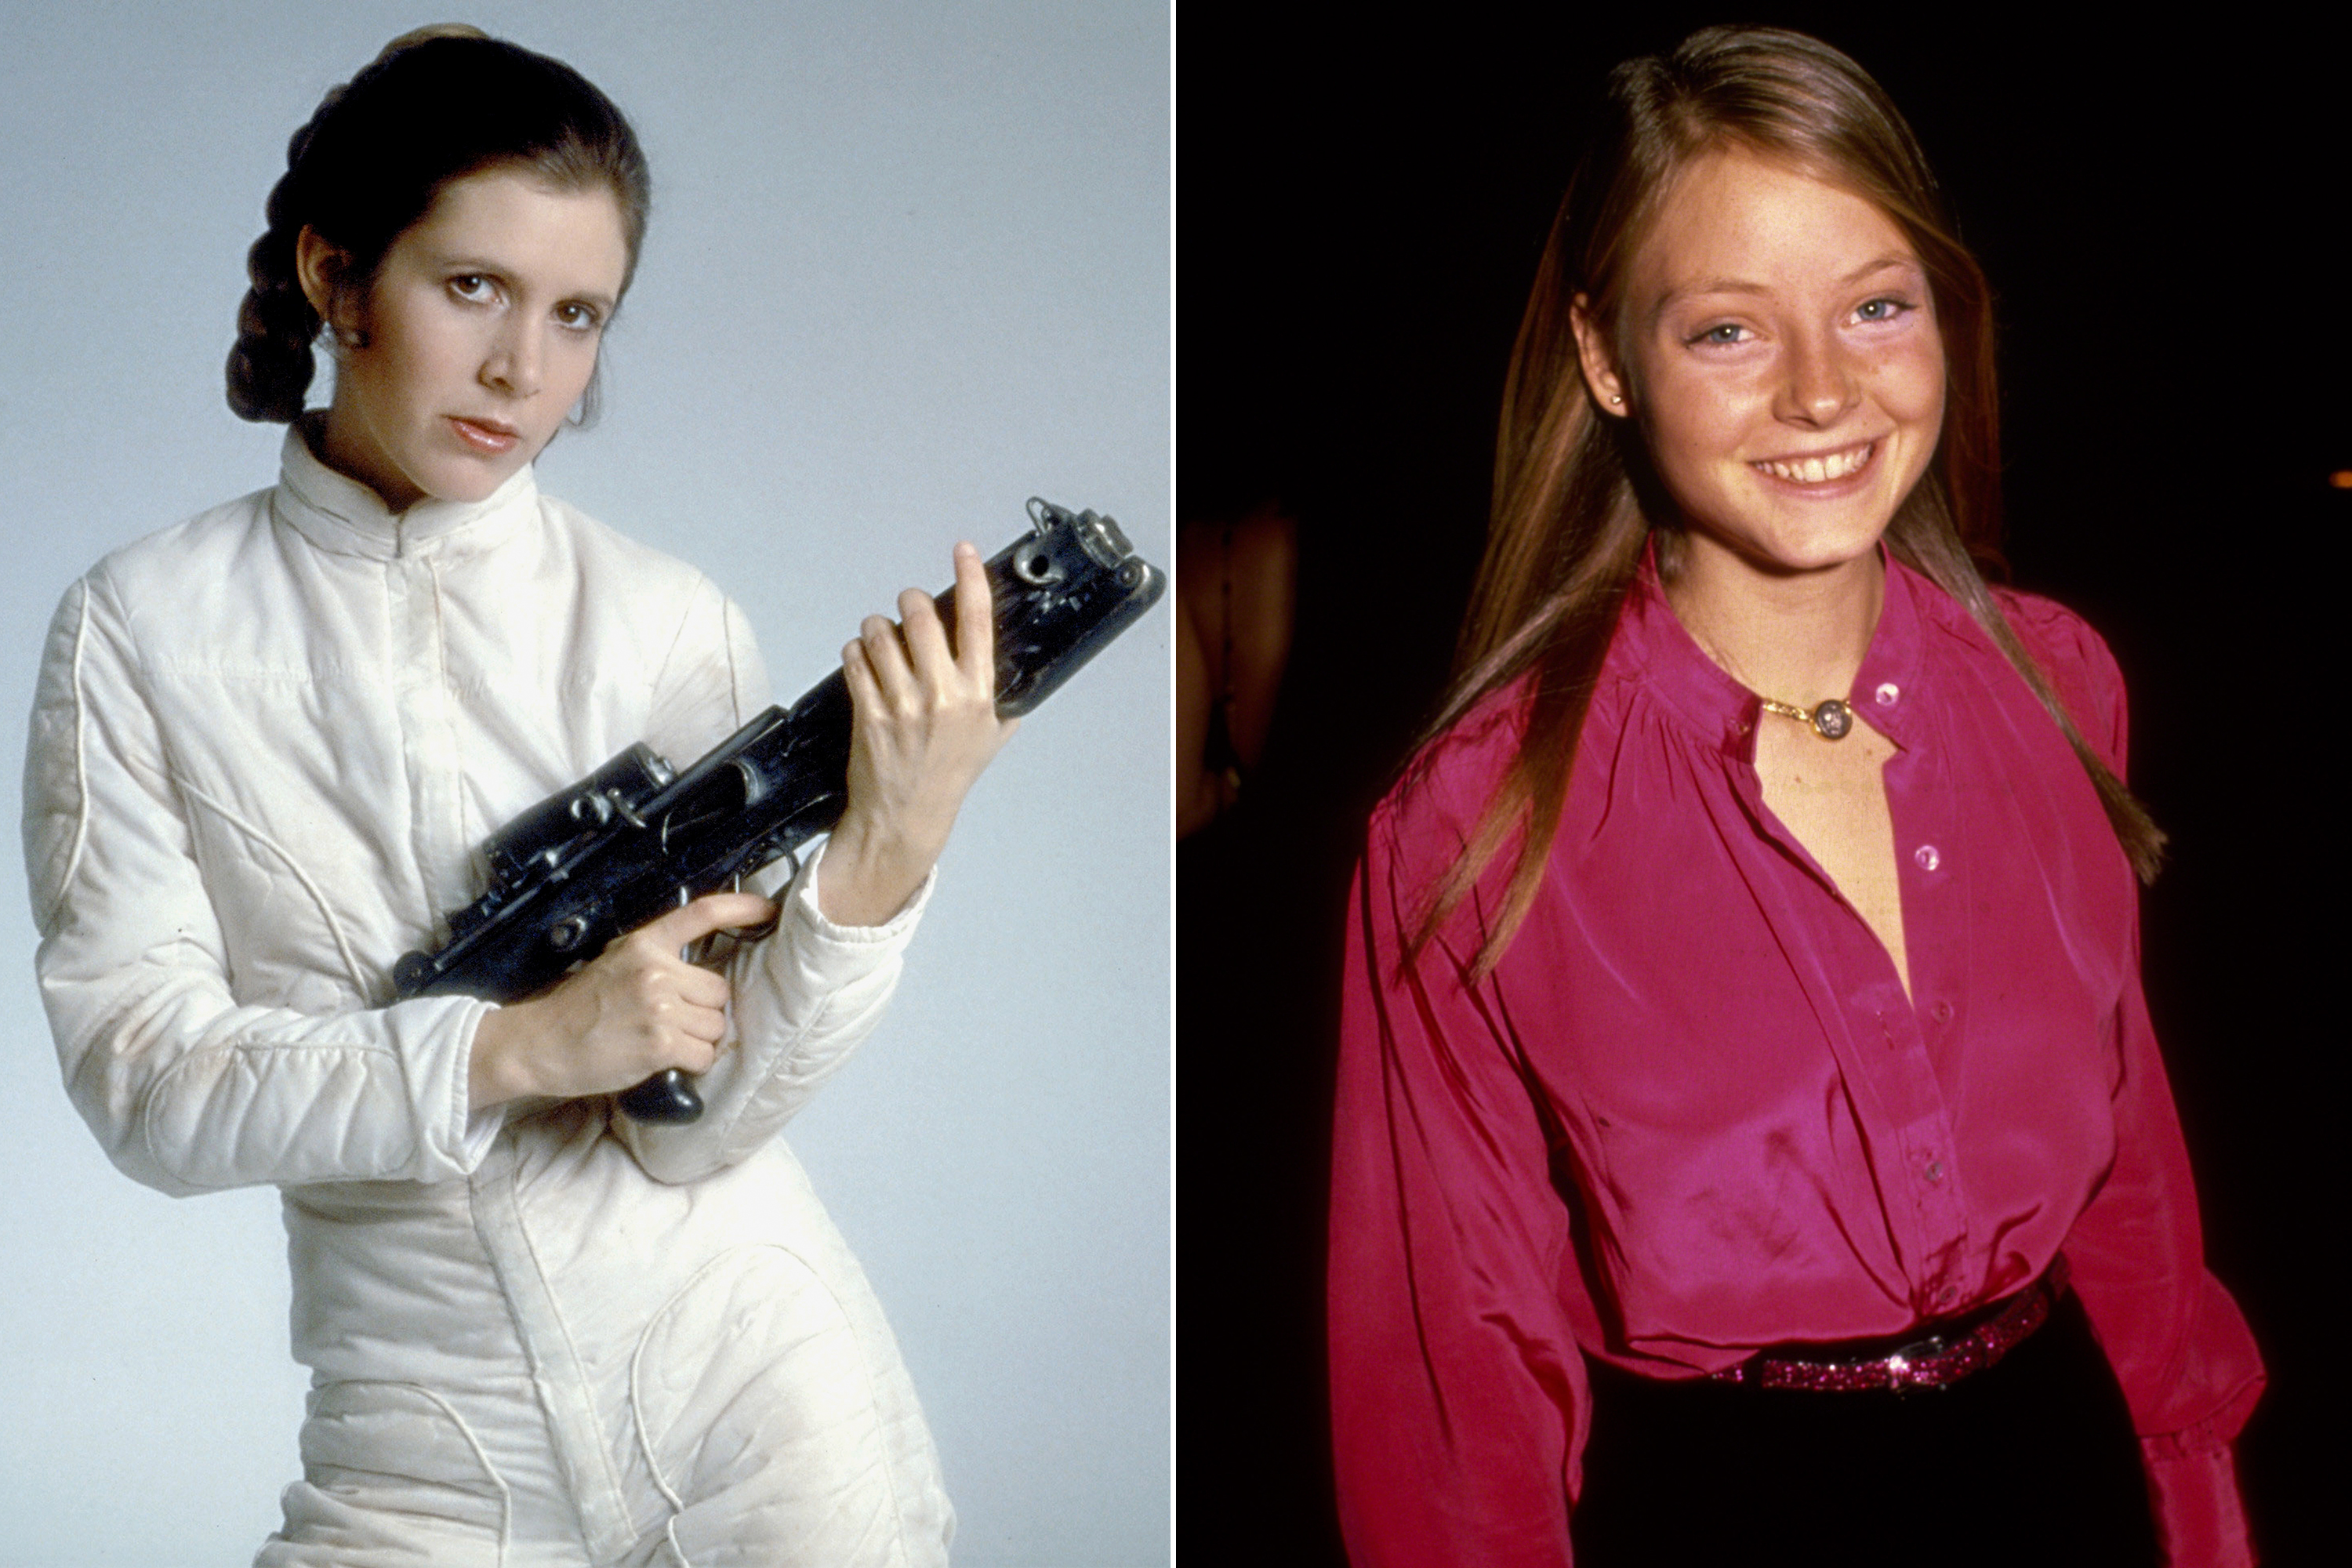 Jodie Foster was almost cast as Princess Leia in Star Wars